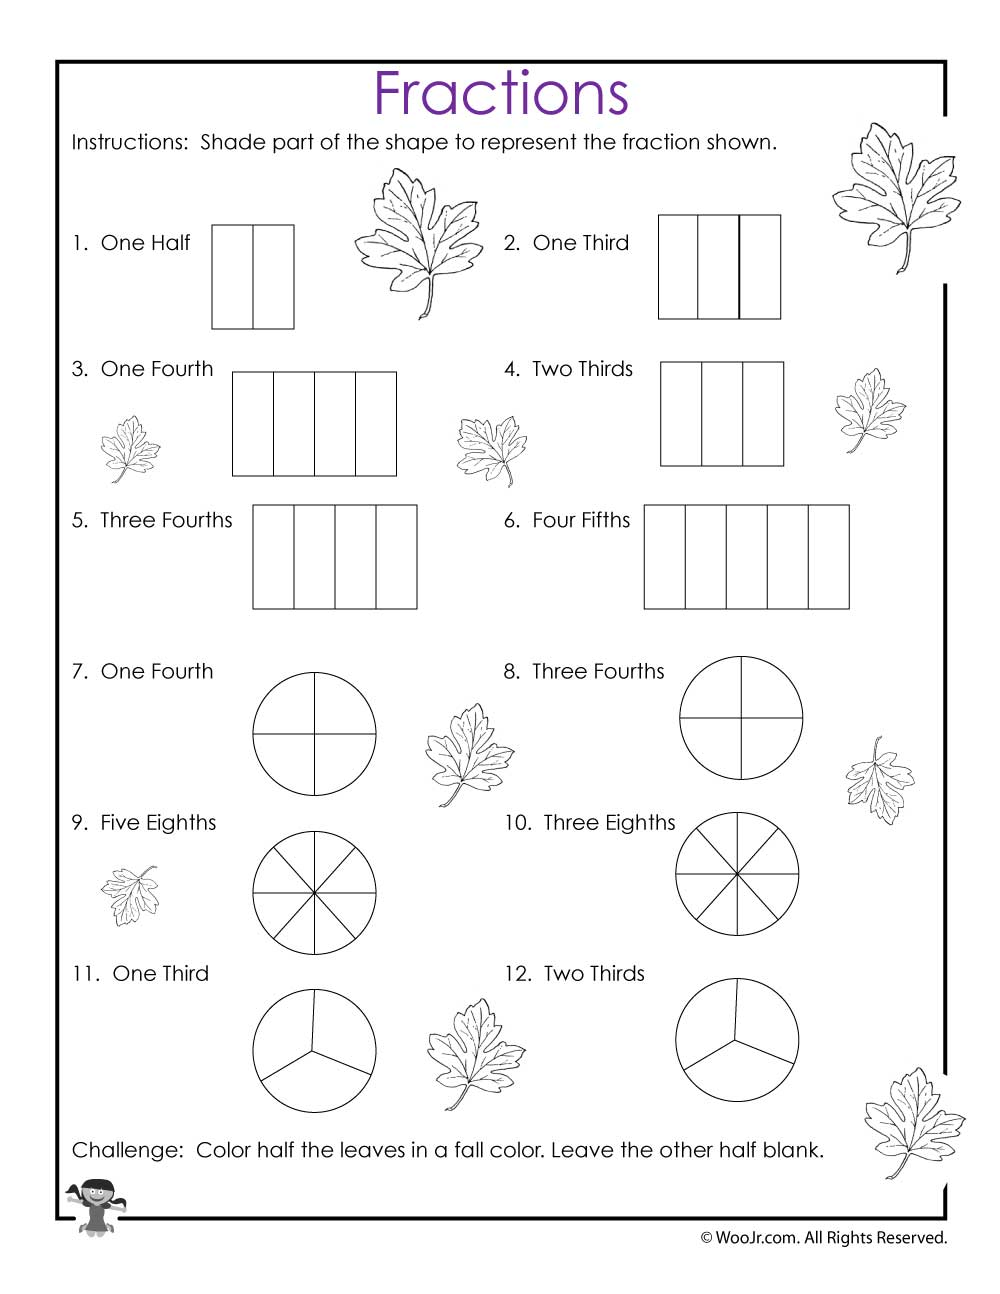 visual fractions worksheet woo jr kids activities. Black Bedroom Furniture Sets. Home Design Ideas